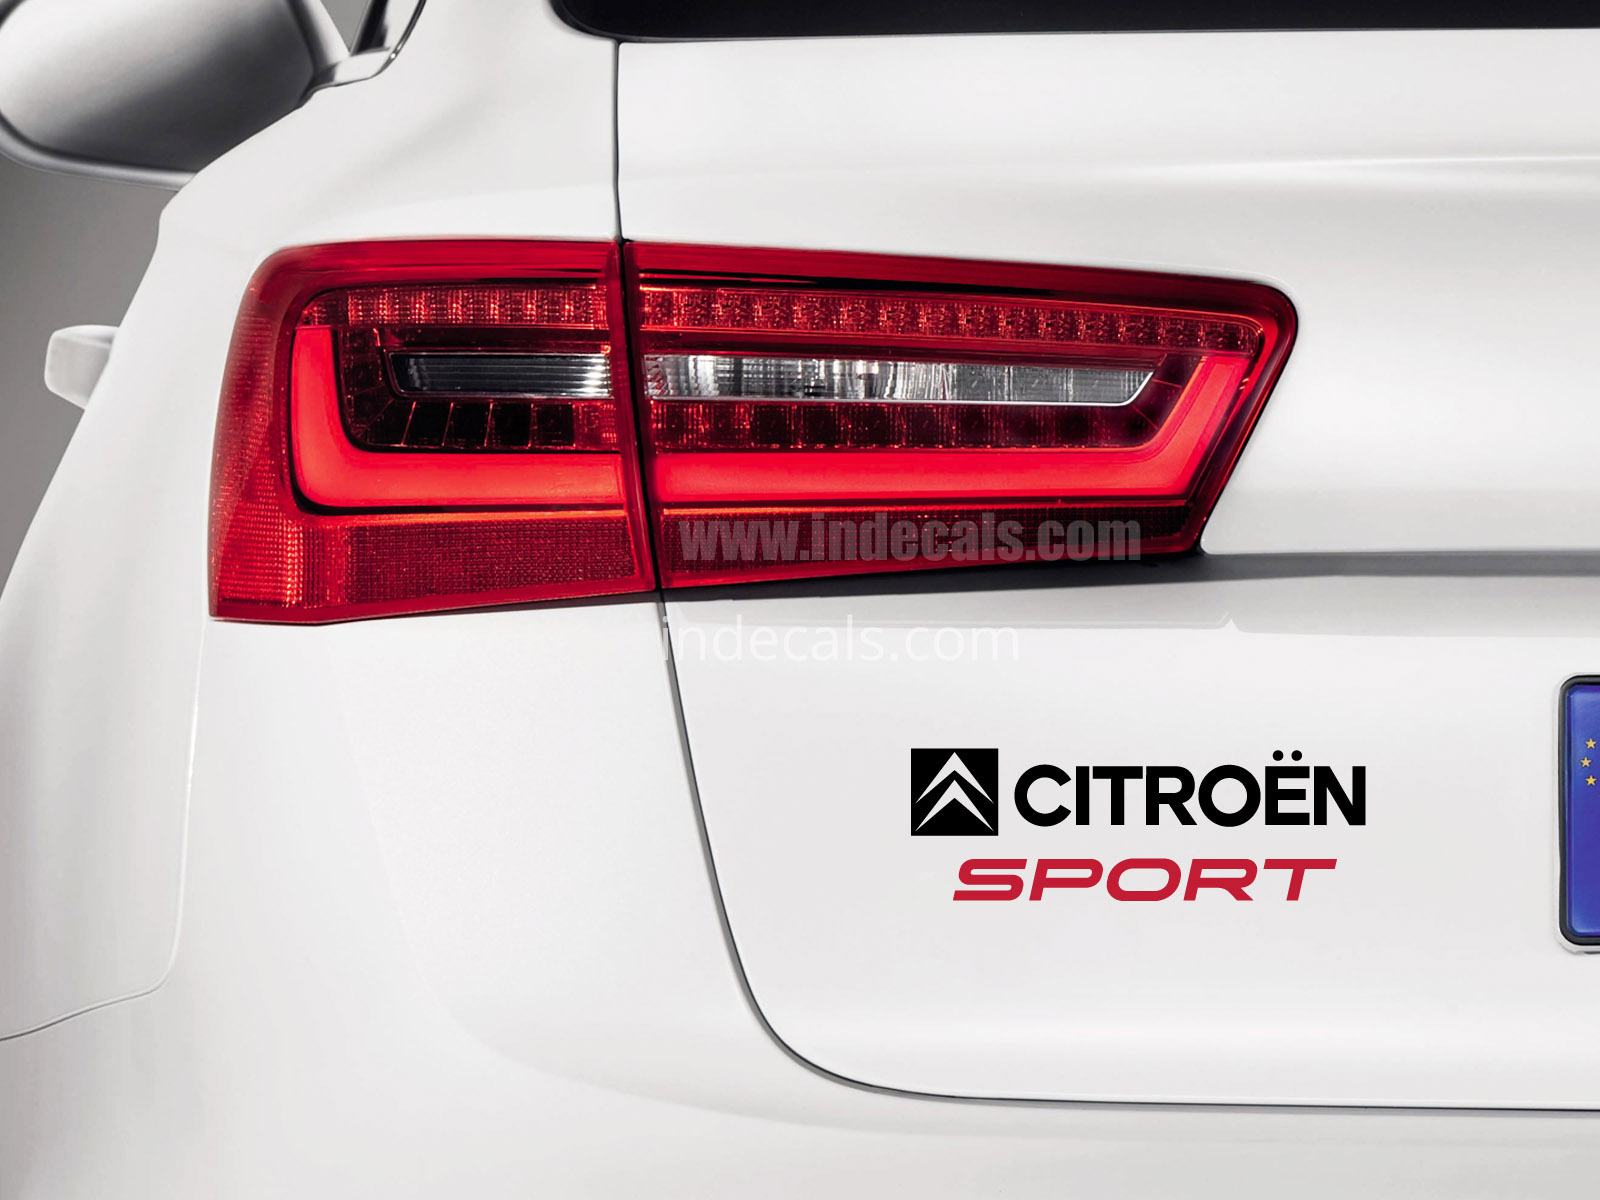 1 x Citroen Sports Sticker for Trunk - Black & Red